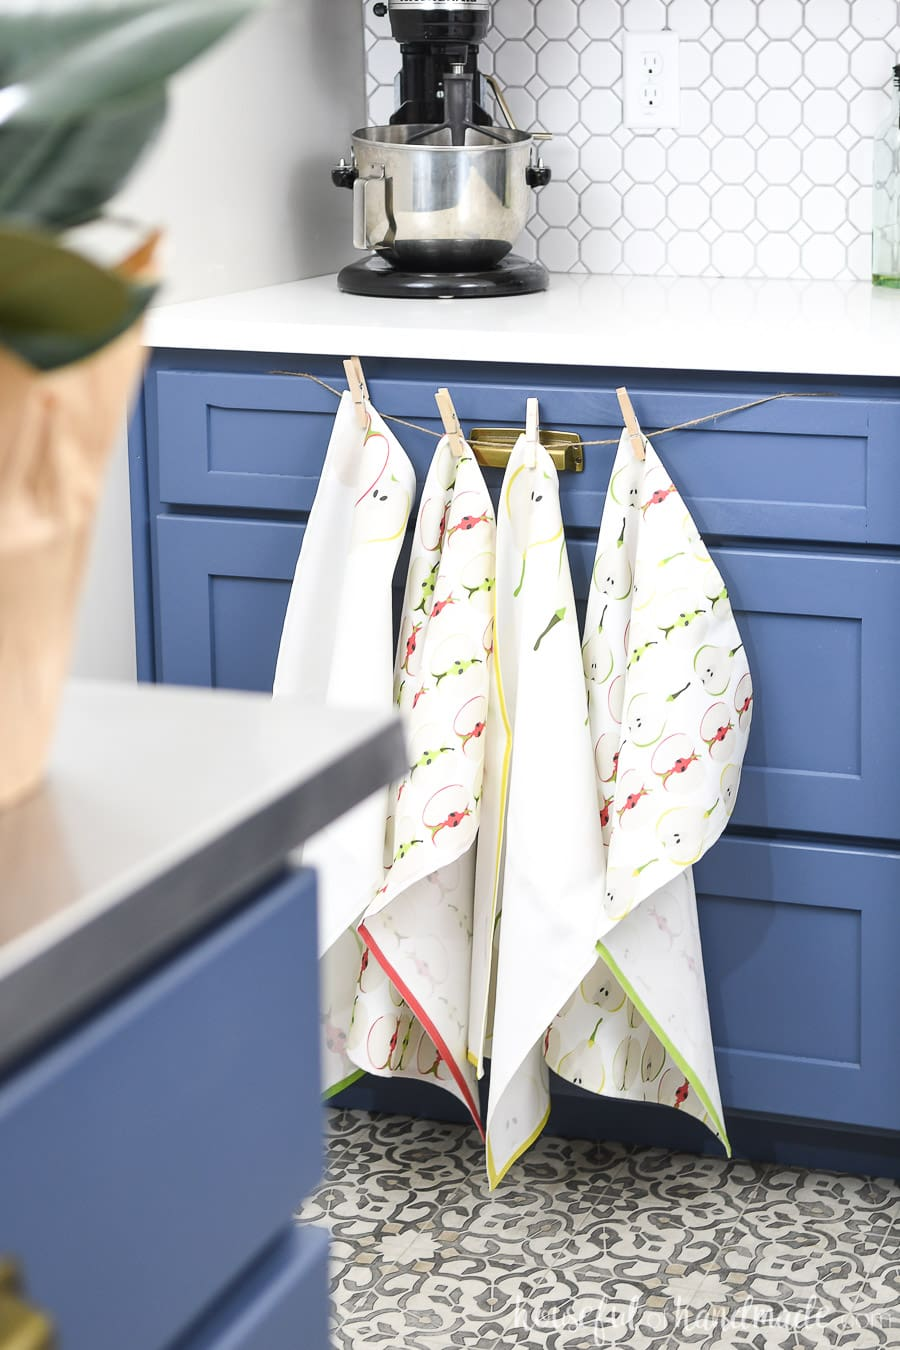 Decorative tea towels with apple and pear designs on it hanging on twine over blue cabinets.